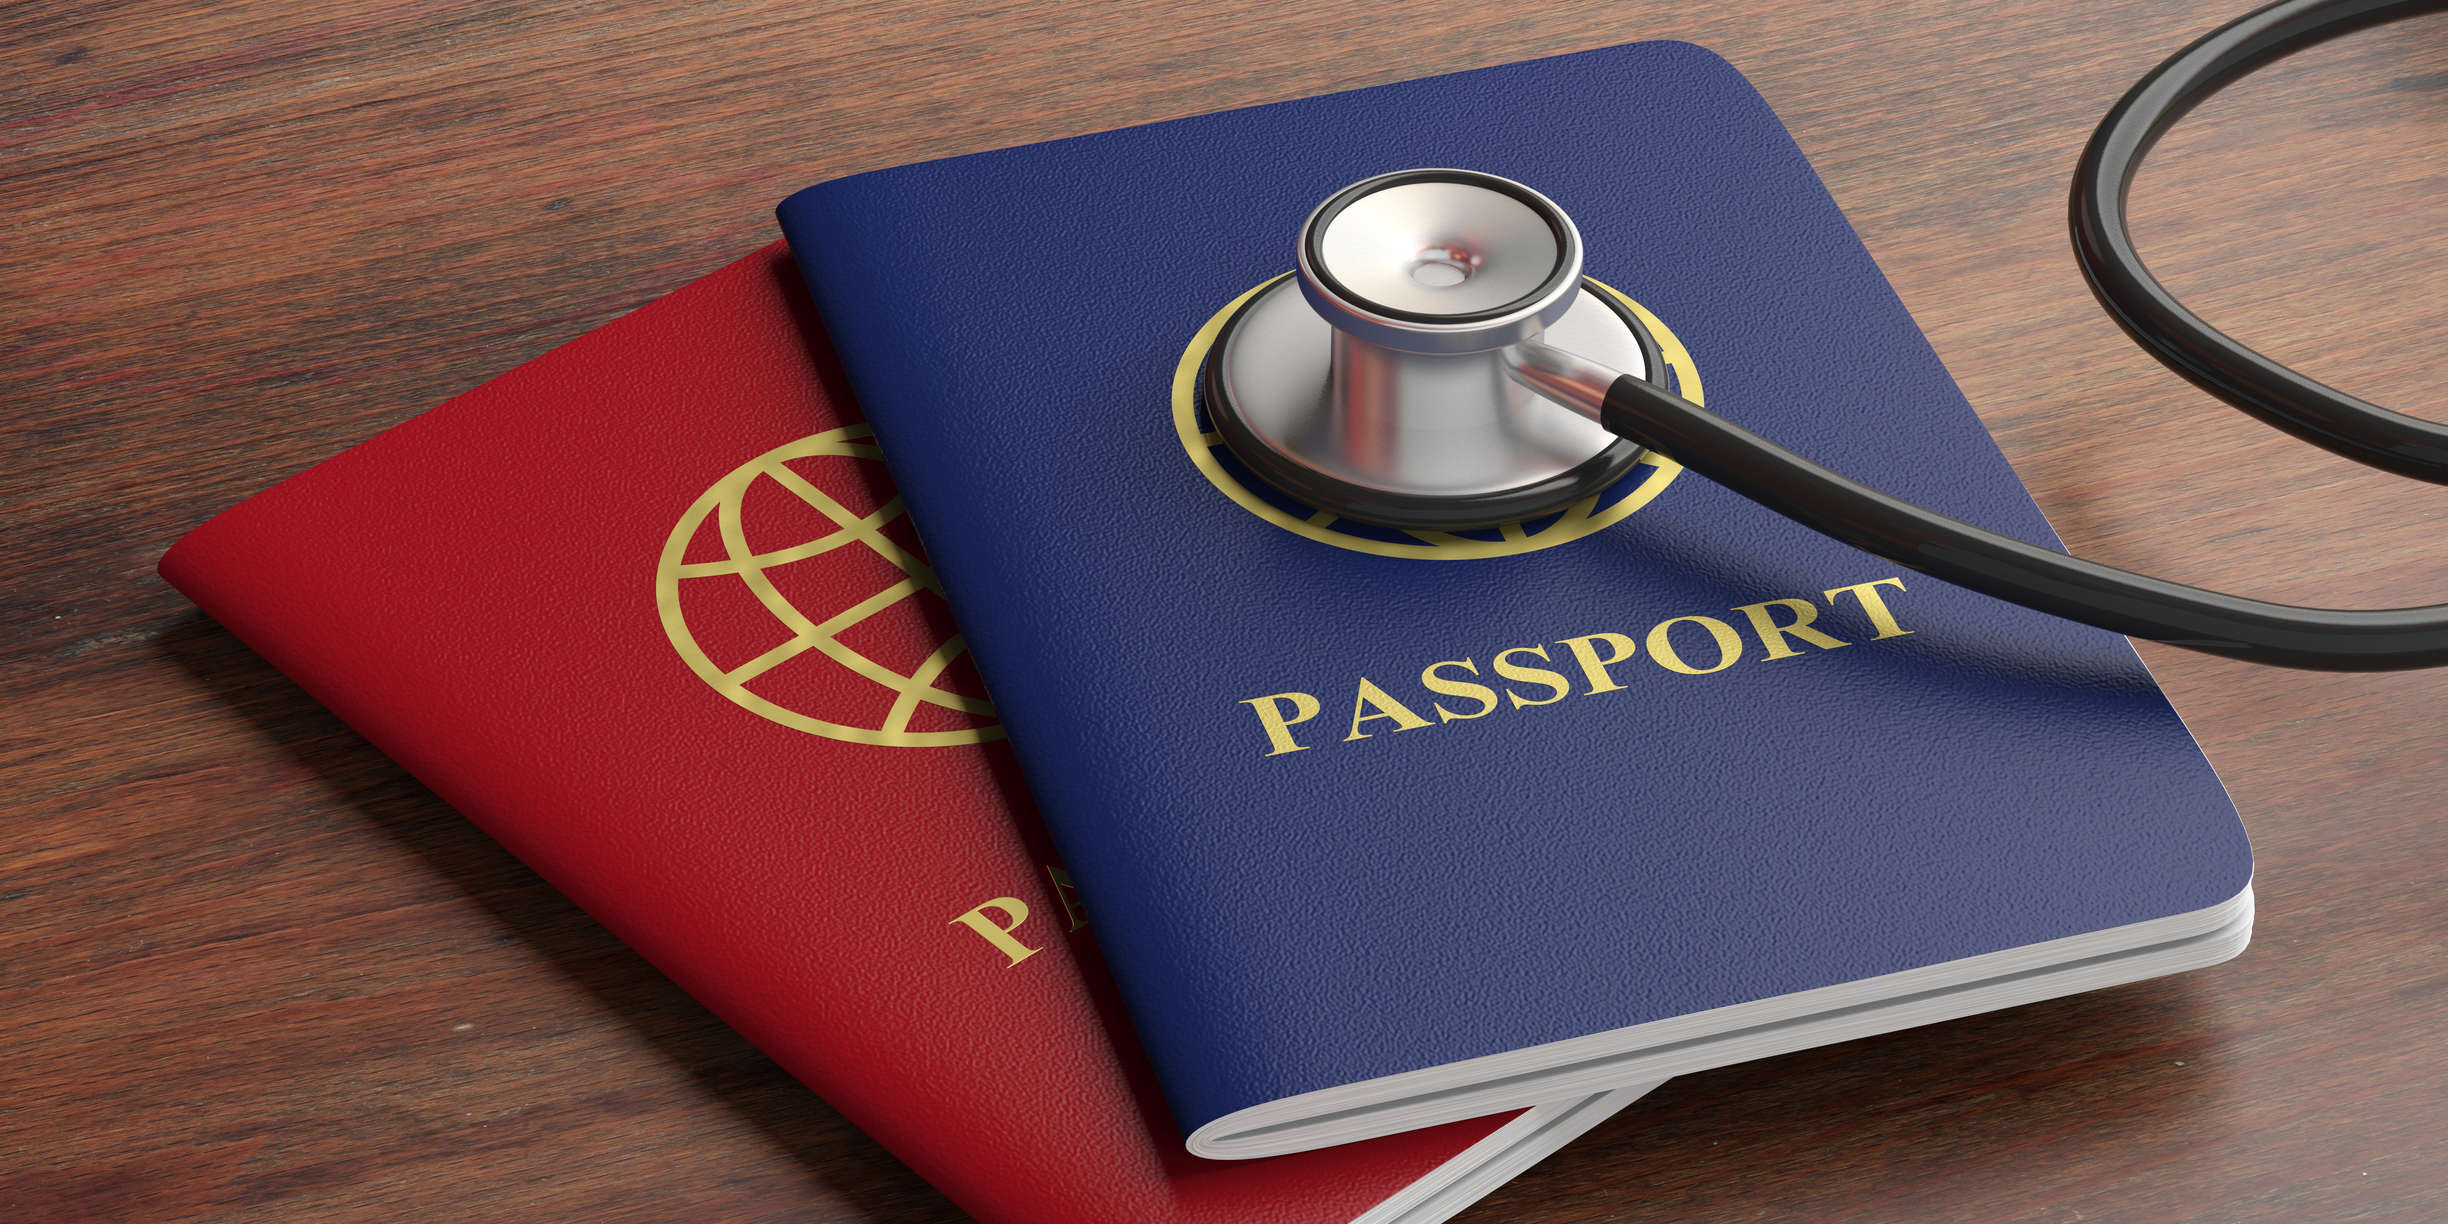 Health Passports: What are they, and are they reliable?